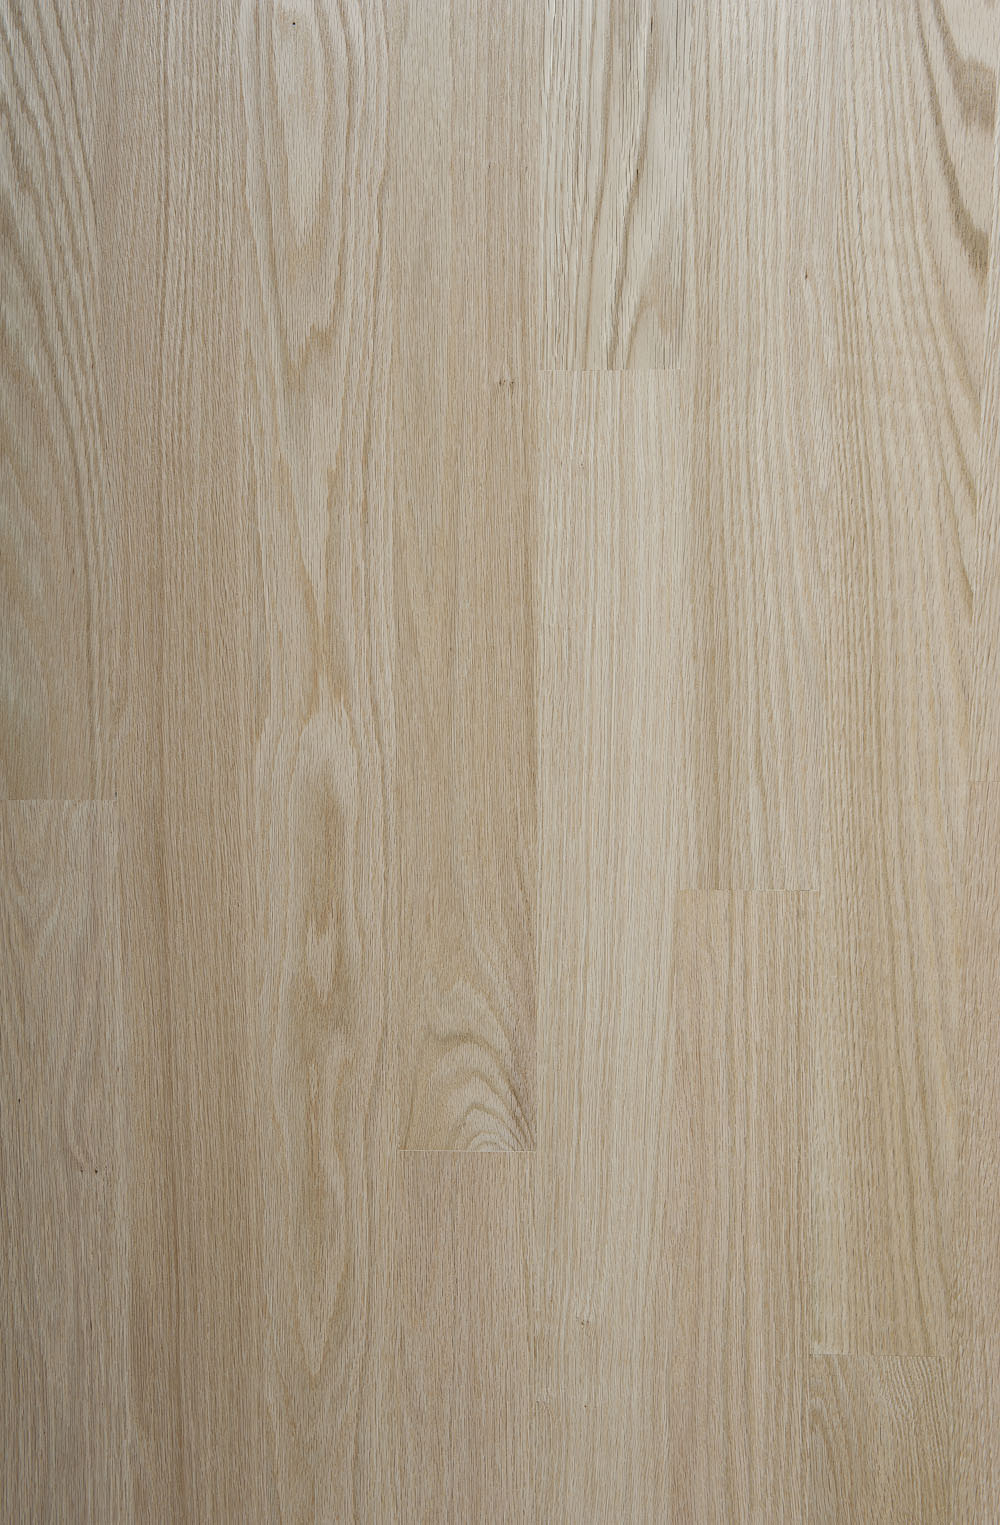 Image Result For Best Rated Engineered Wood Flooring